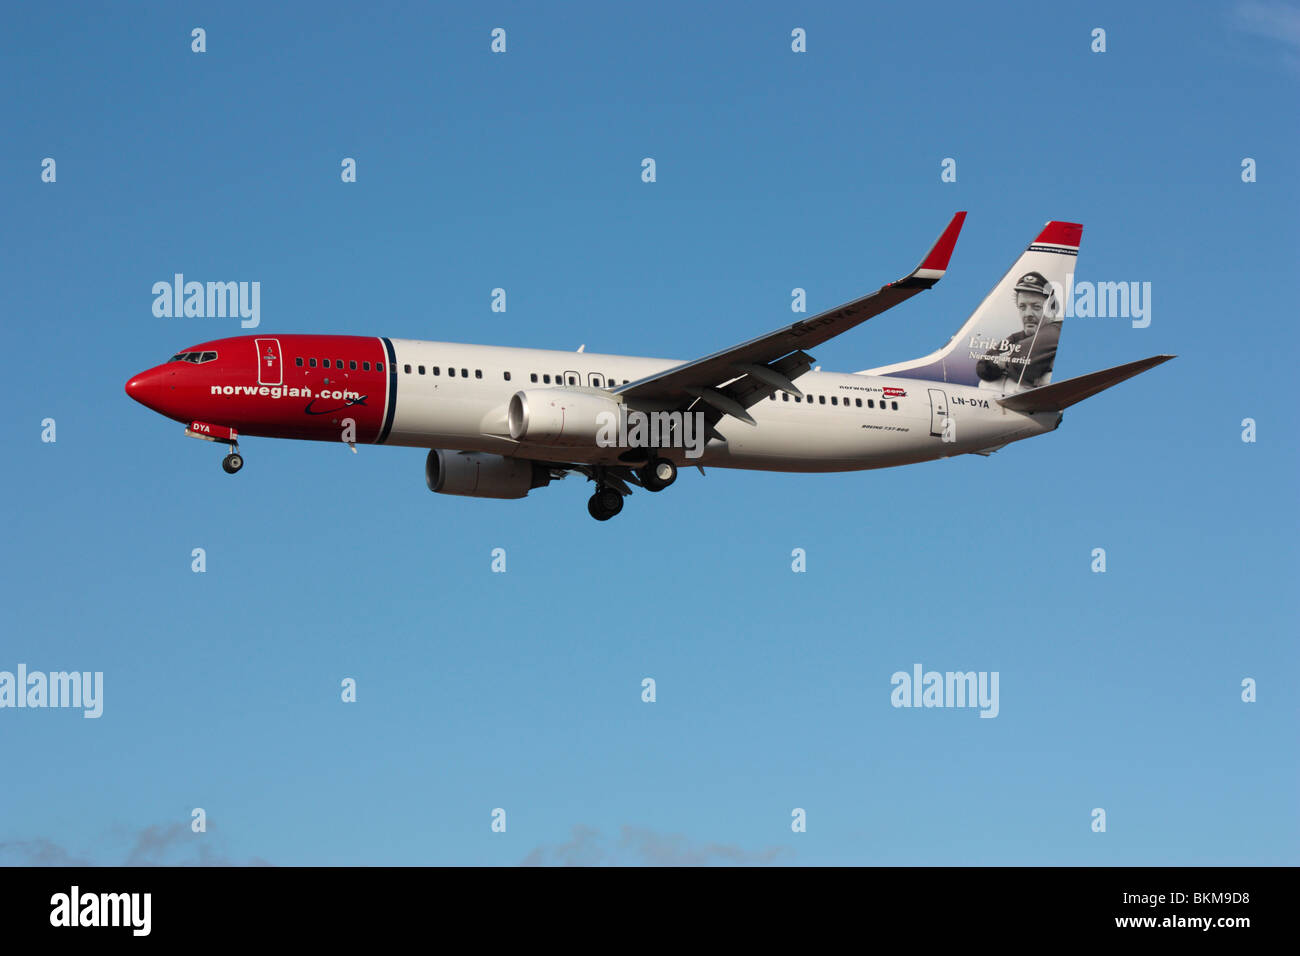 Boeing 737-800 passenger jet plane operated by Norwegian Airlines - Stock Image